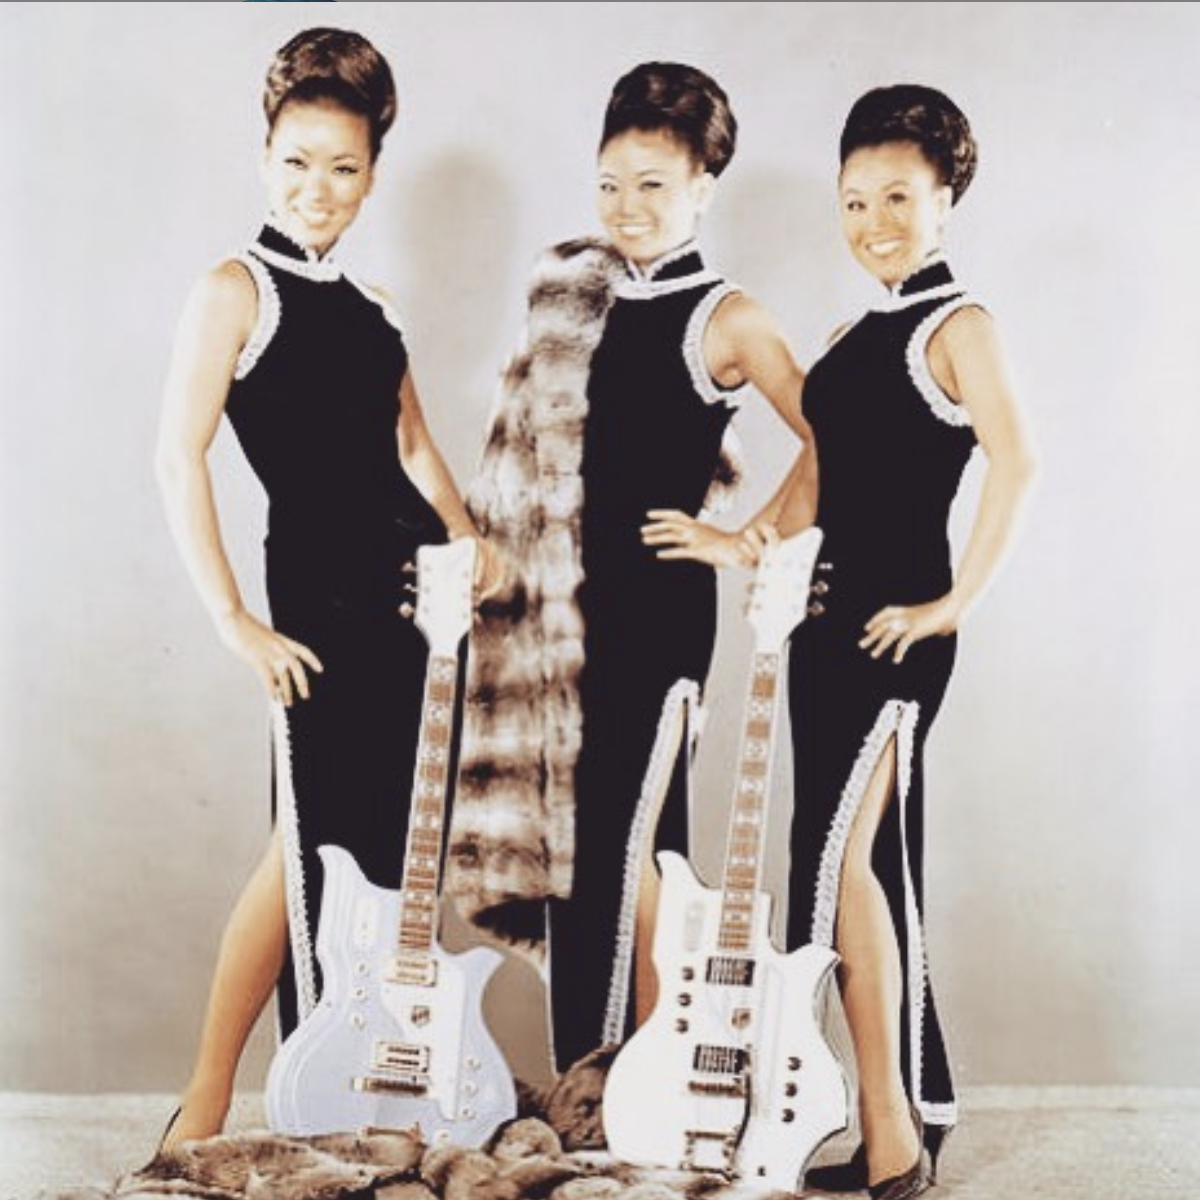 The Kim Sisters were the original K-pop sensations. Do yourself a favor and look these badass ladies up!